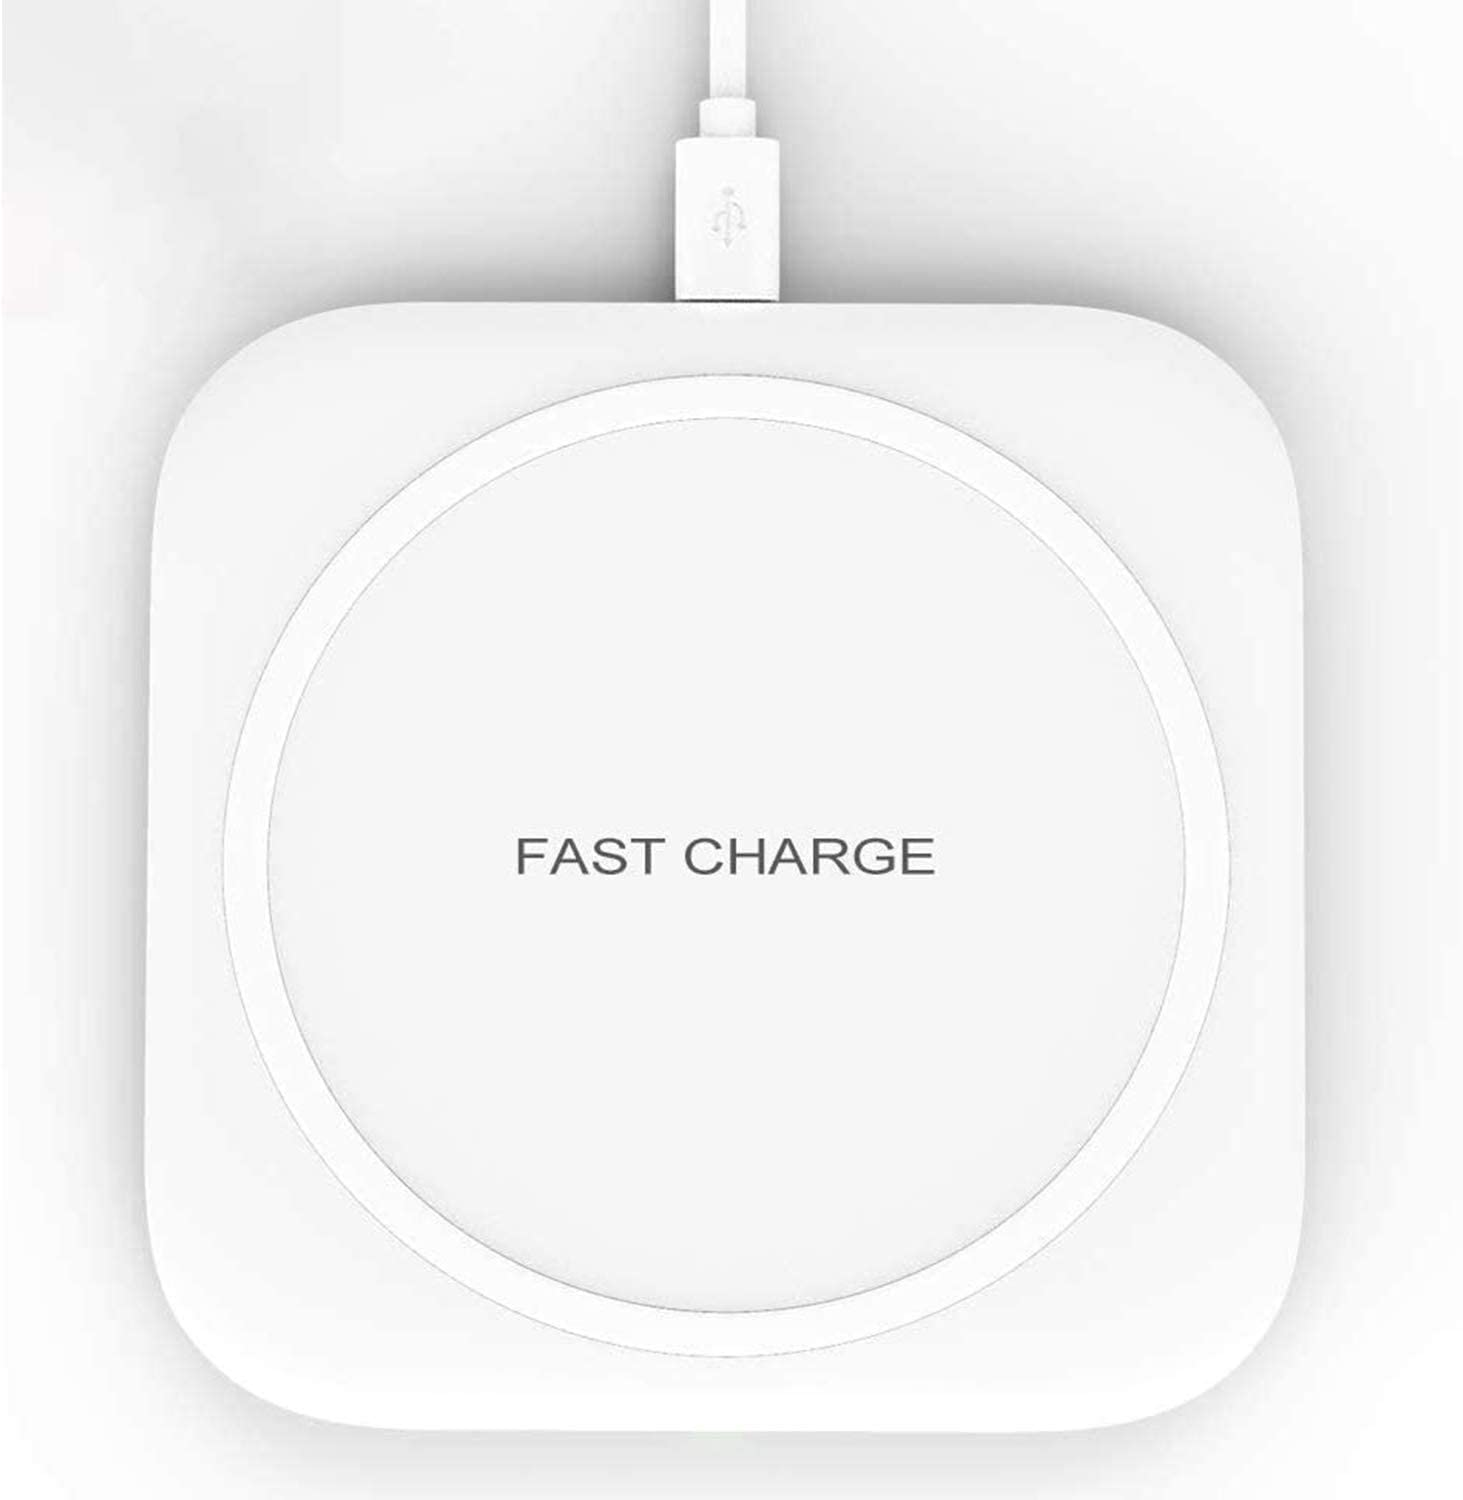 Hoidokly Cargador Inalámbrico Rápido Qi Wireless Charger para iPhone SE 2020/11 Pro/XS/XS Max/XR/X/8/8P, 10W Carga Rápida para Samsung Galaxy S20/S20+/S10/ S10+/S10e/S9/S8/S7/Note 20/10+,Airpods Pro